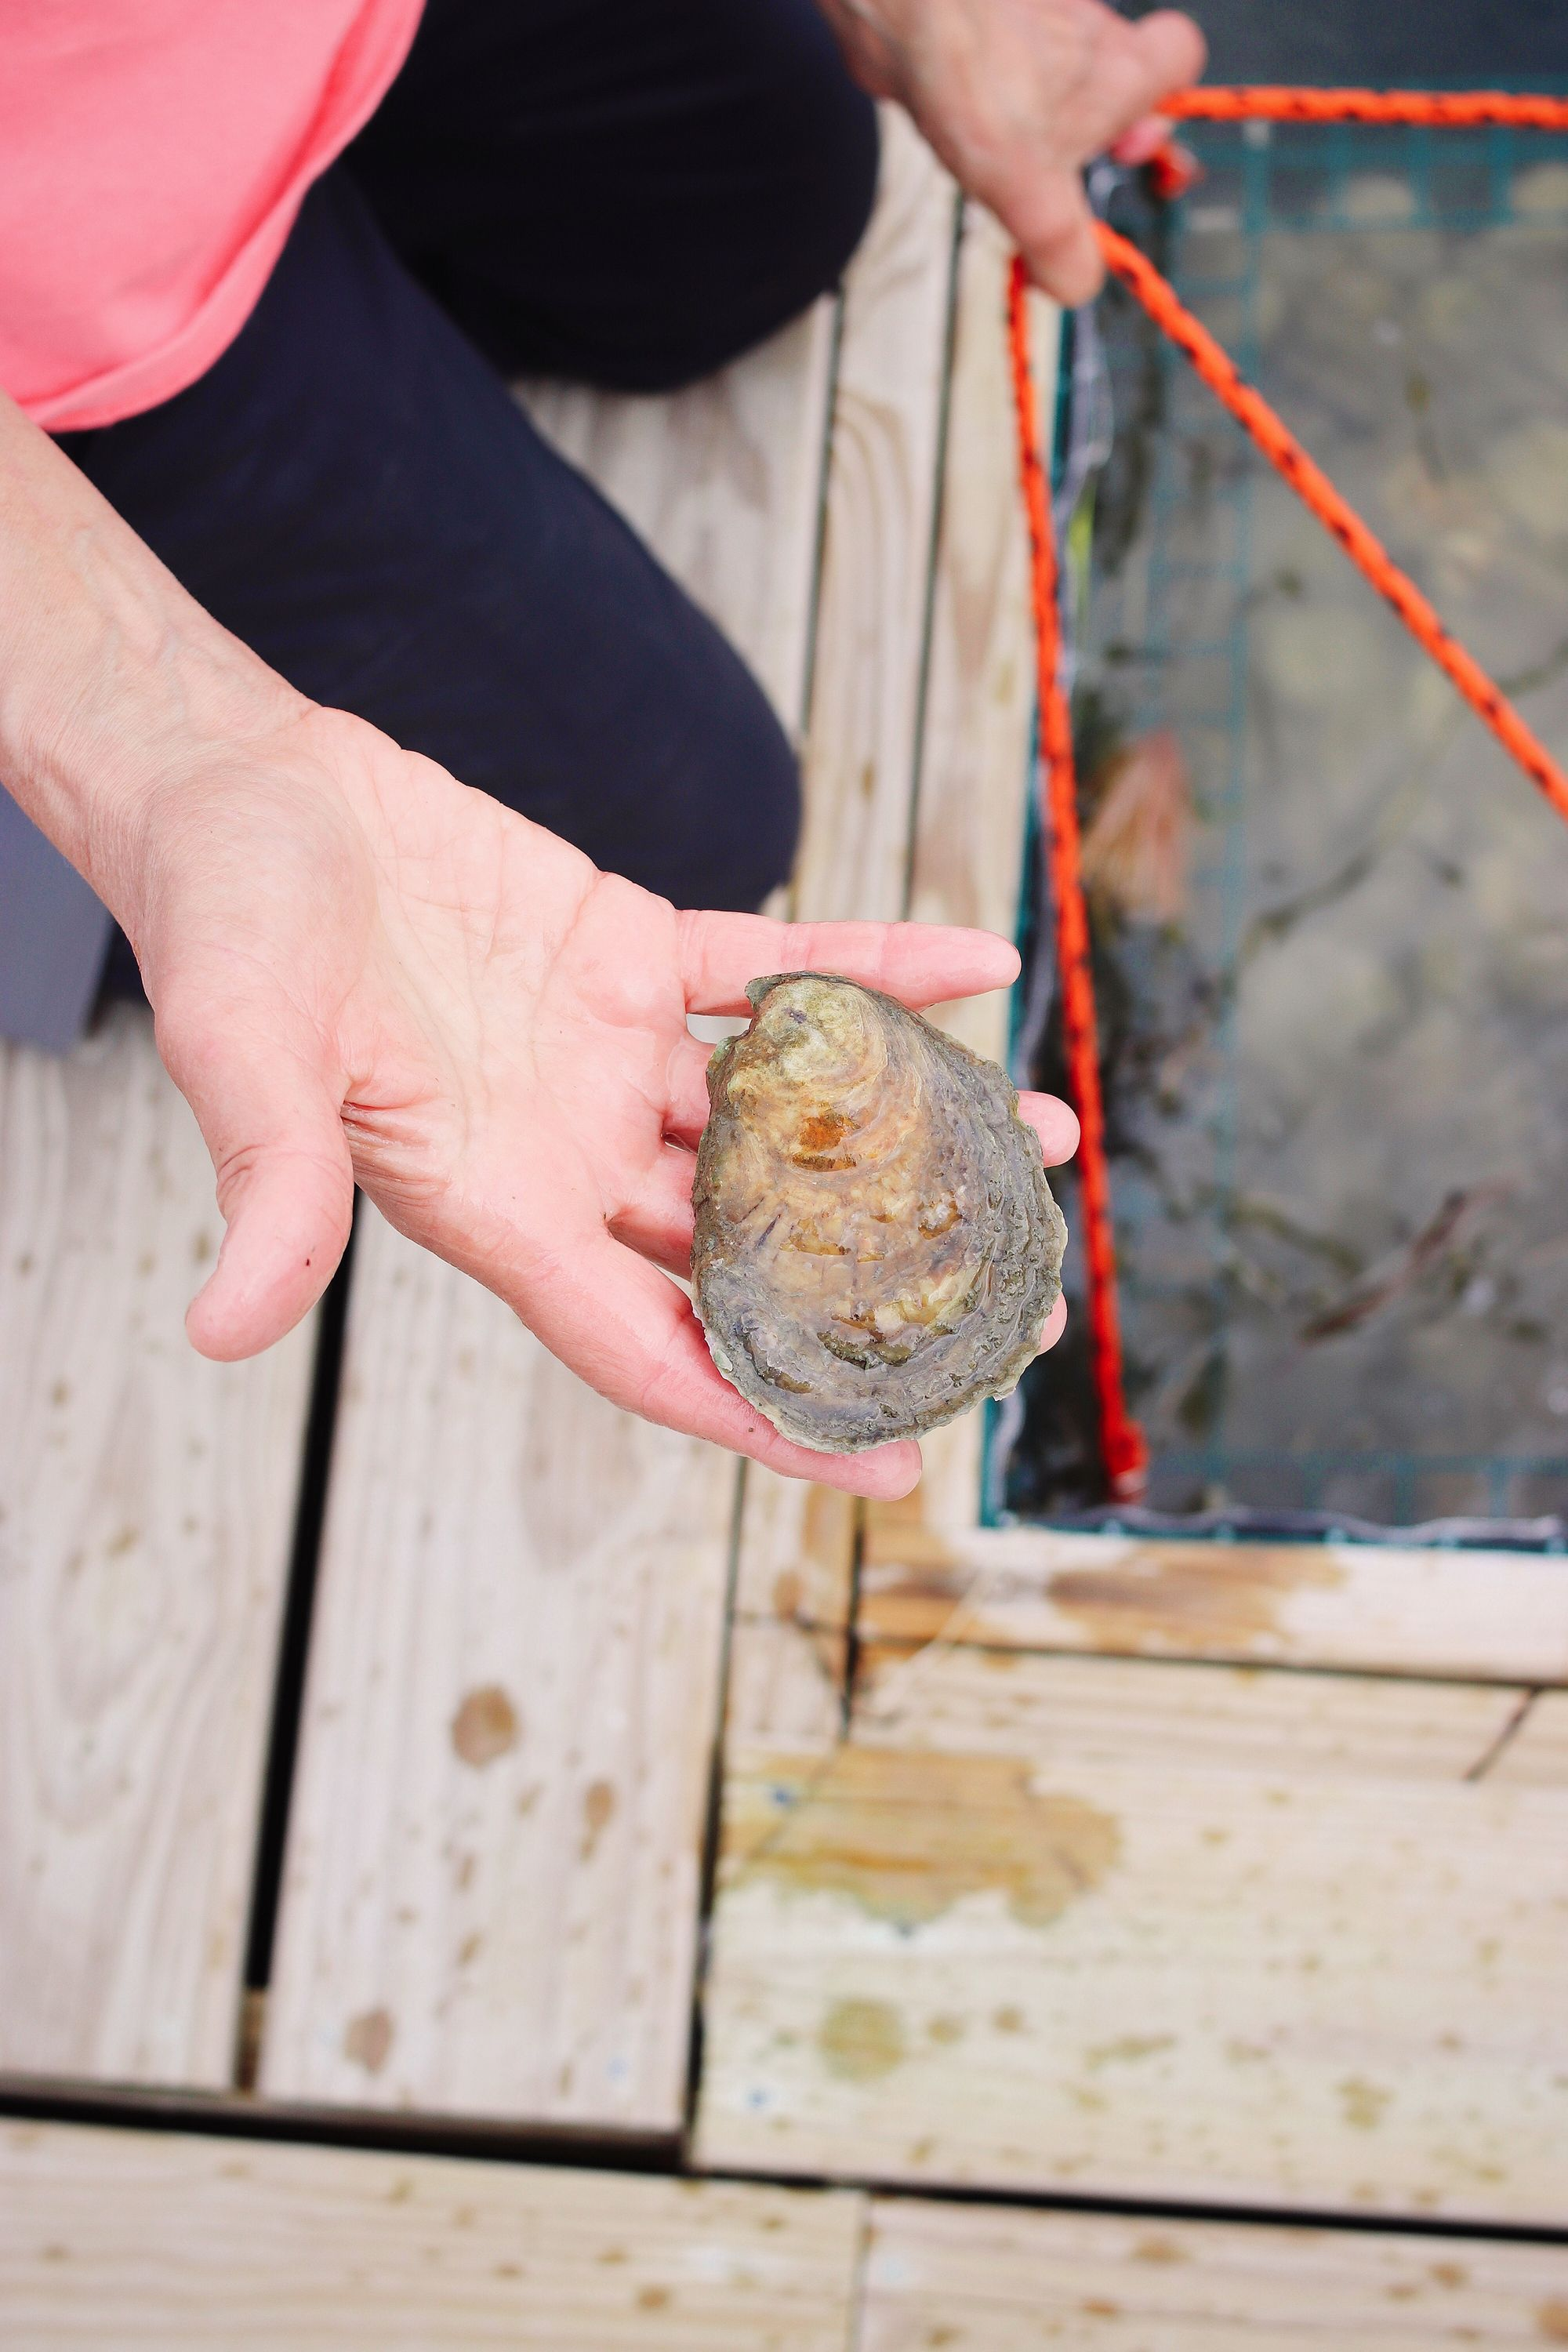 Appledore Oysters produces flavorful Damariscotta River oysters.  #eventideoysterco  #eatmoreoysters #oysterlovers #oysters #oysterlove #seafood #seafoodlovers #oysterfarmers #oysterfarming #oysterfarm #bigtreehospitality #shucker #portlandmaine #mainefood #maineeats #mainerestaurants #newengland #mainelovers #mainefoodies